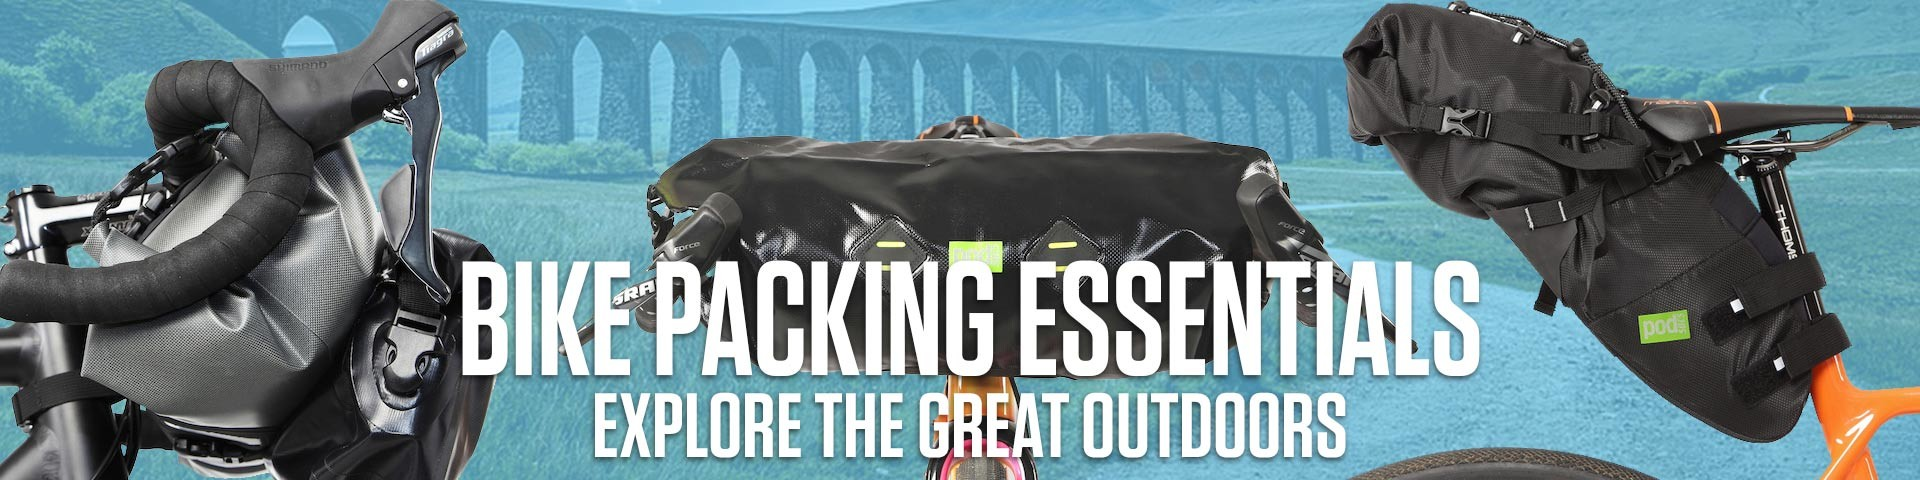 Bike Packing Essentials - Explore the Great Outdoors